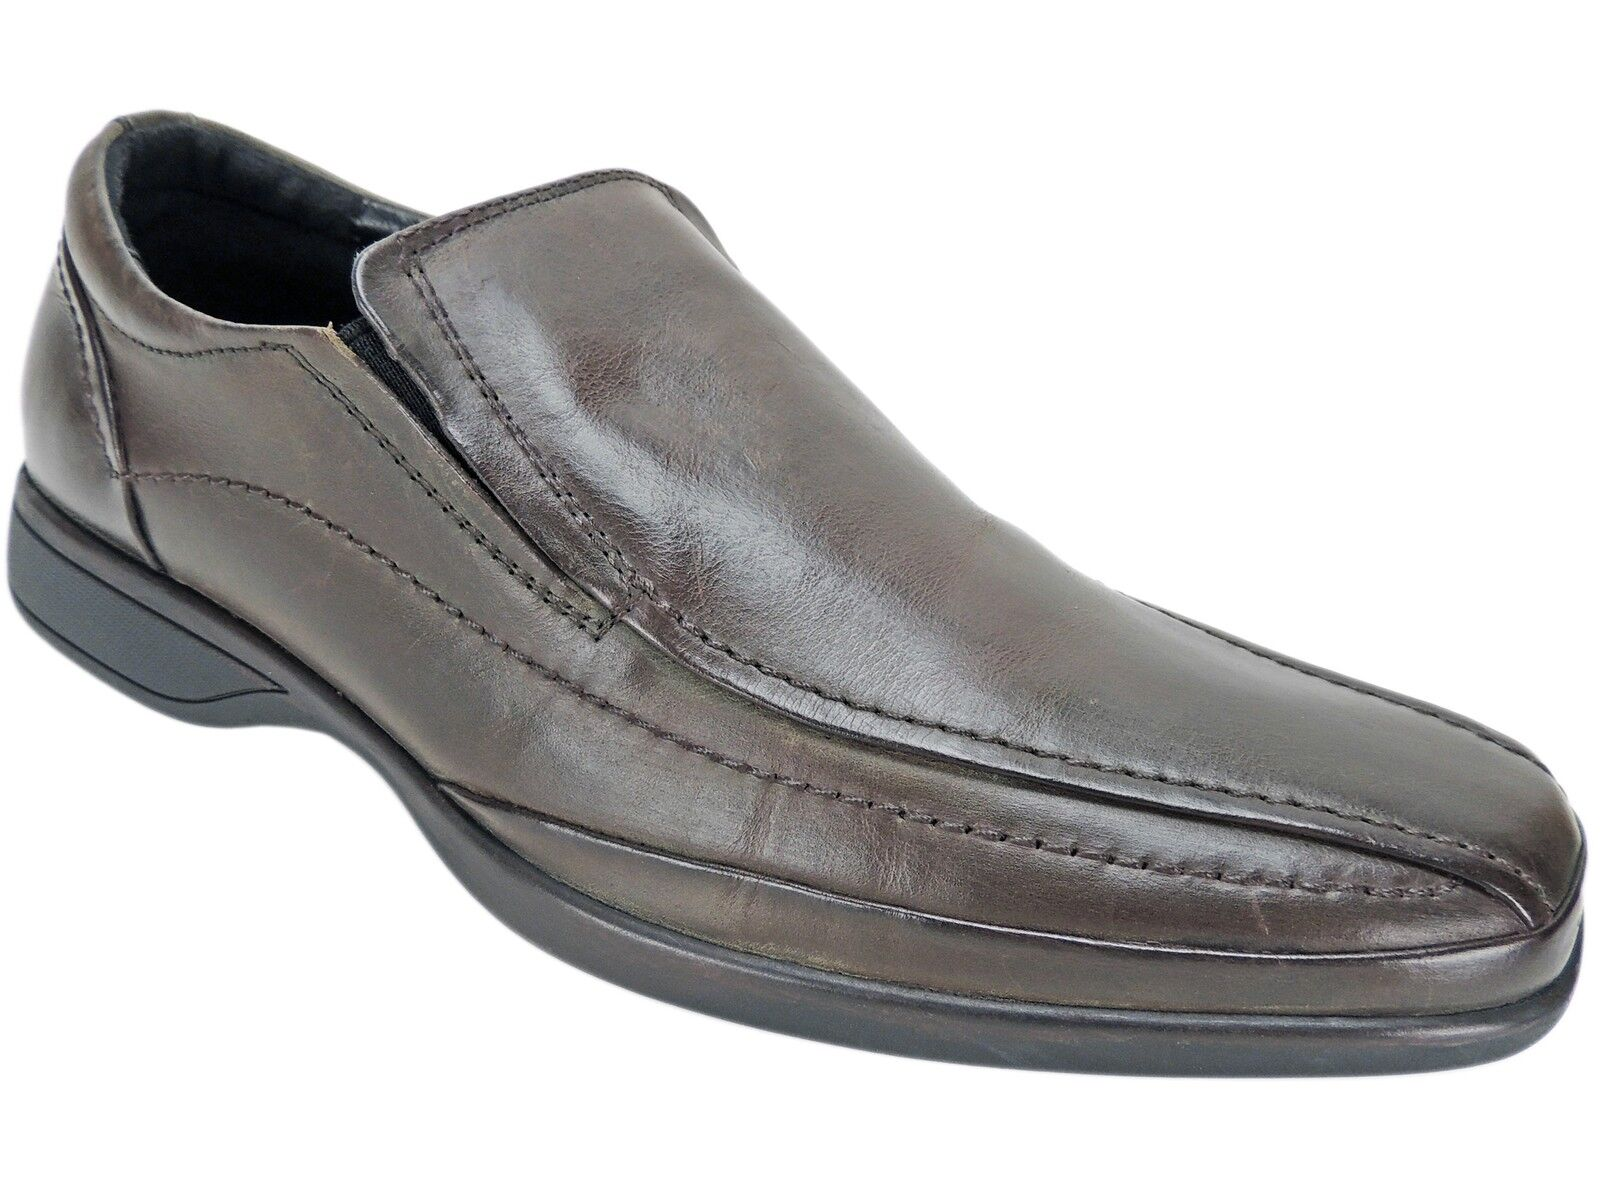 Kenneth Cole Reaction Men's Strong Bunch Slip-On Loafer Brown Leather Size 7 M